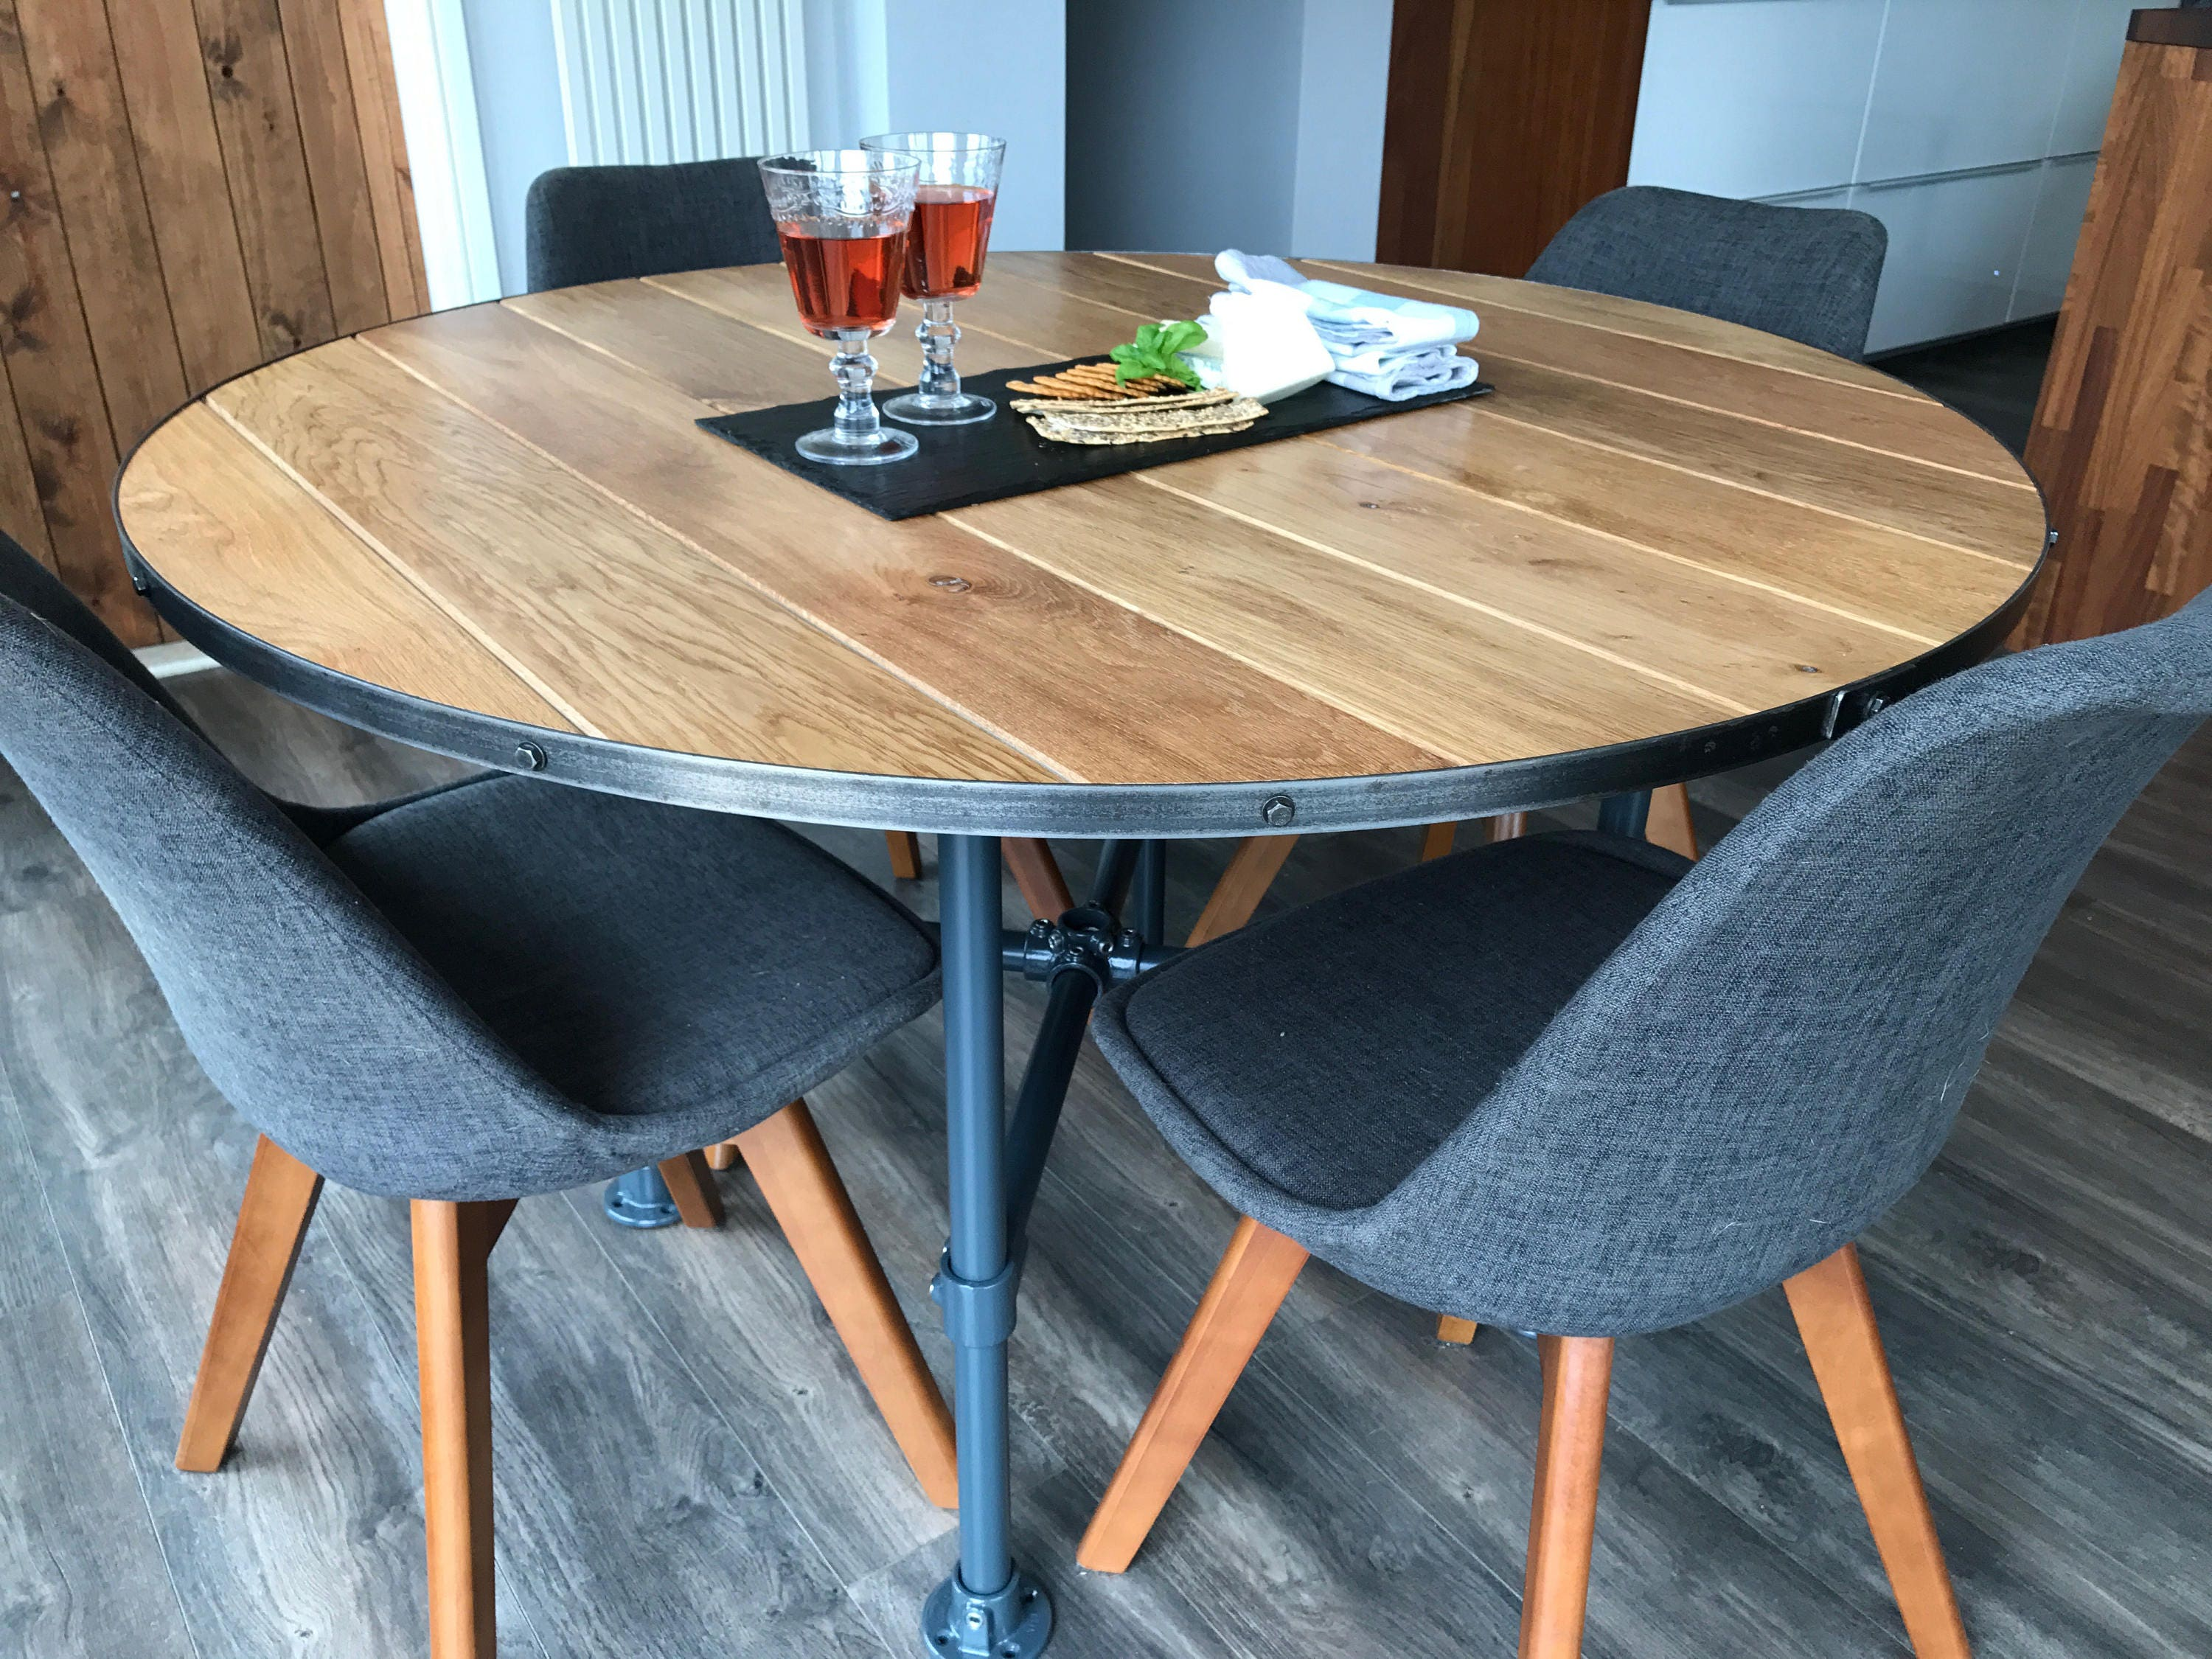 Solid Oak Industrial Style Dining Table, Round Oak Kitchen Table, Industrial  Chic, Steel Band Edge With Black Coach Screw Detailing